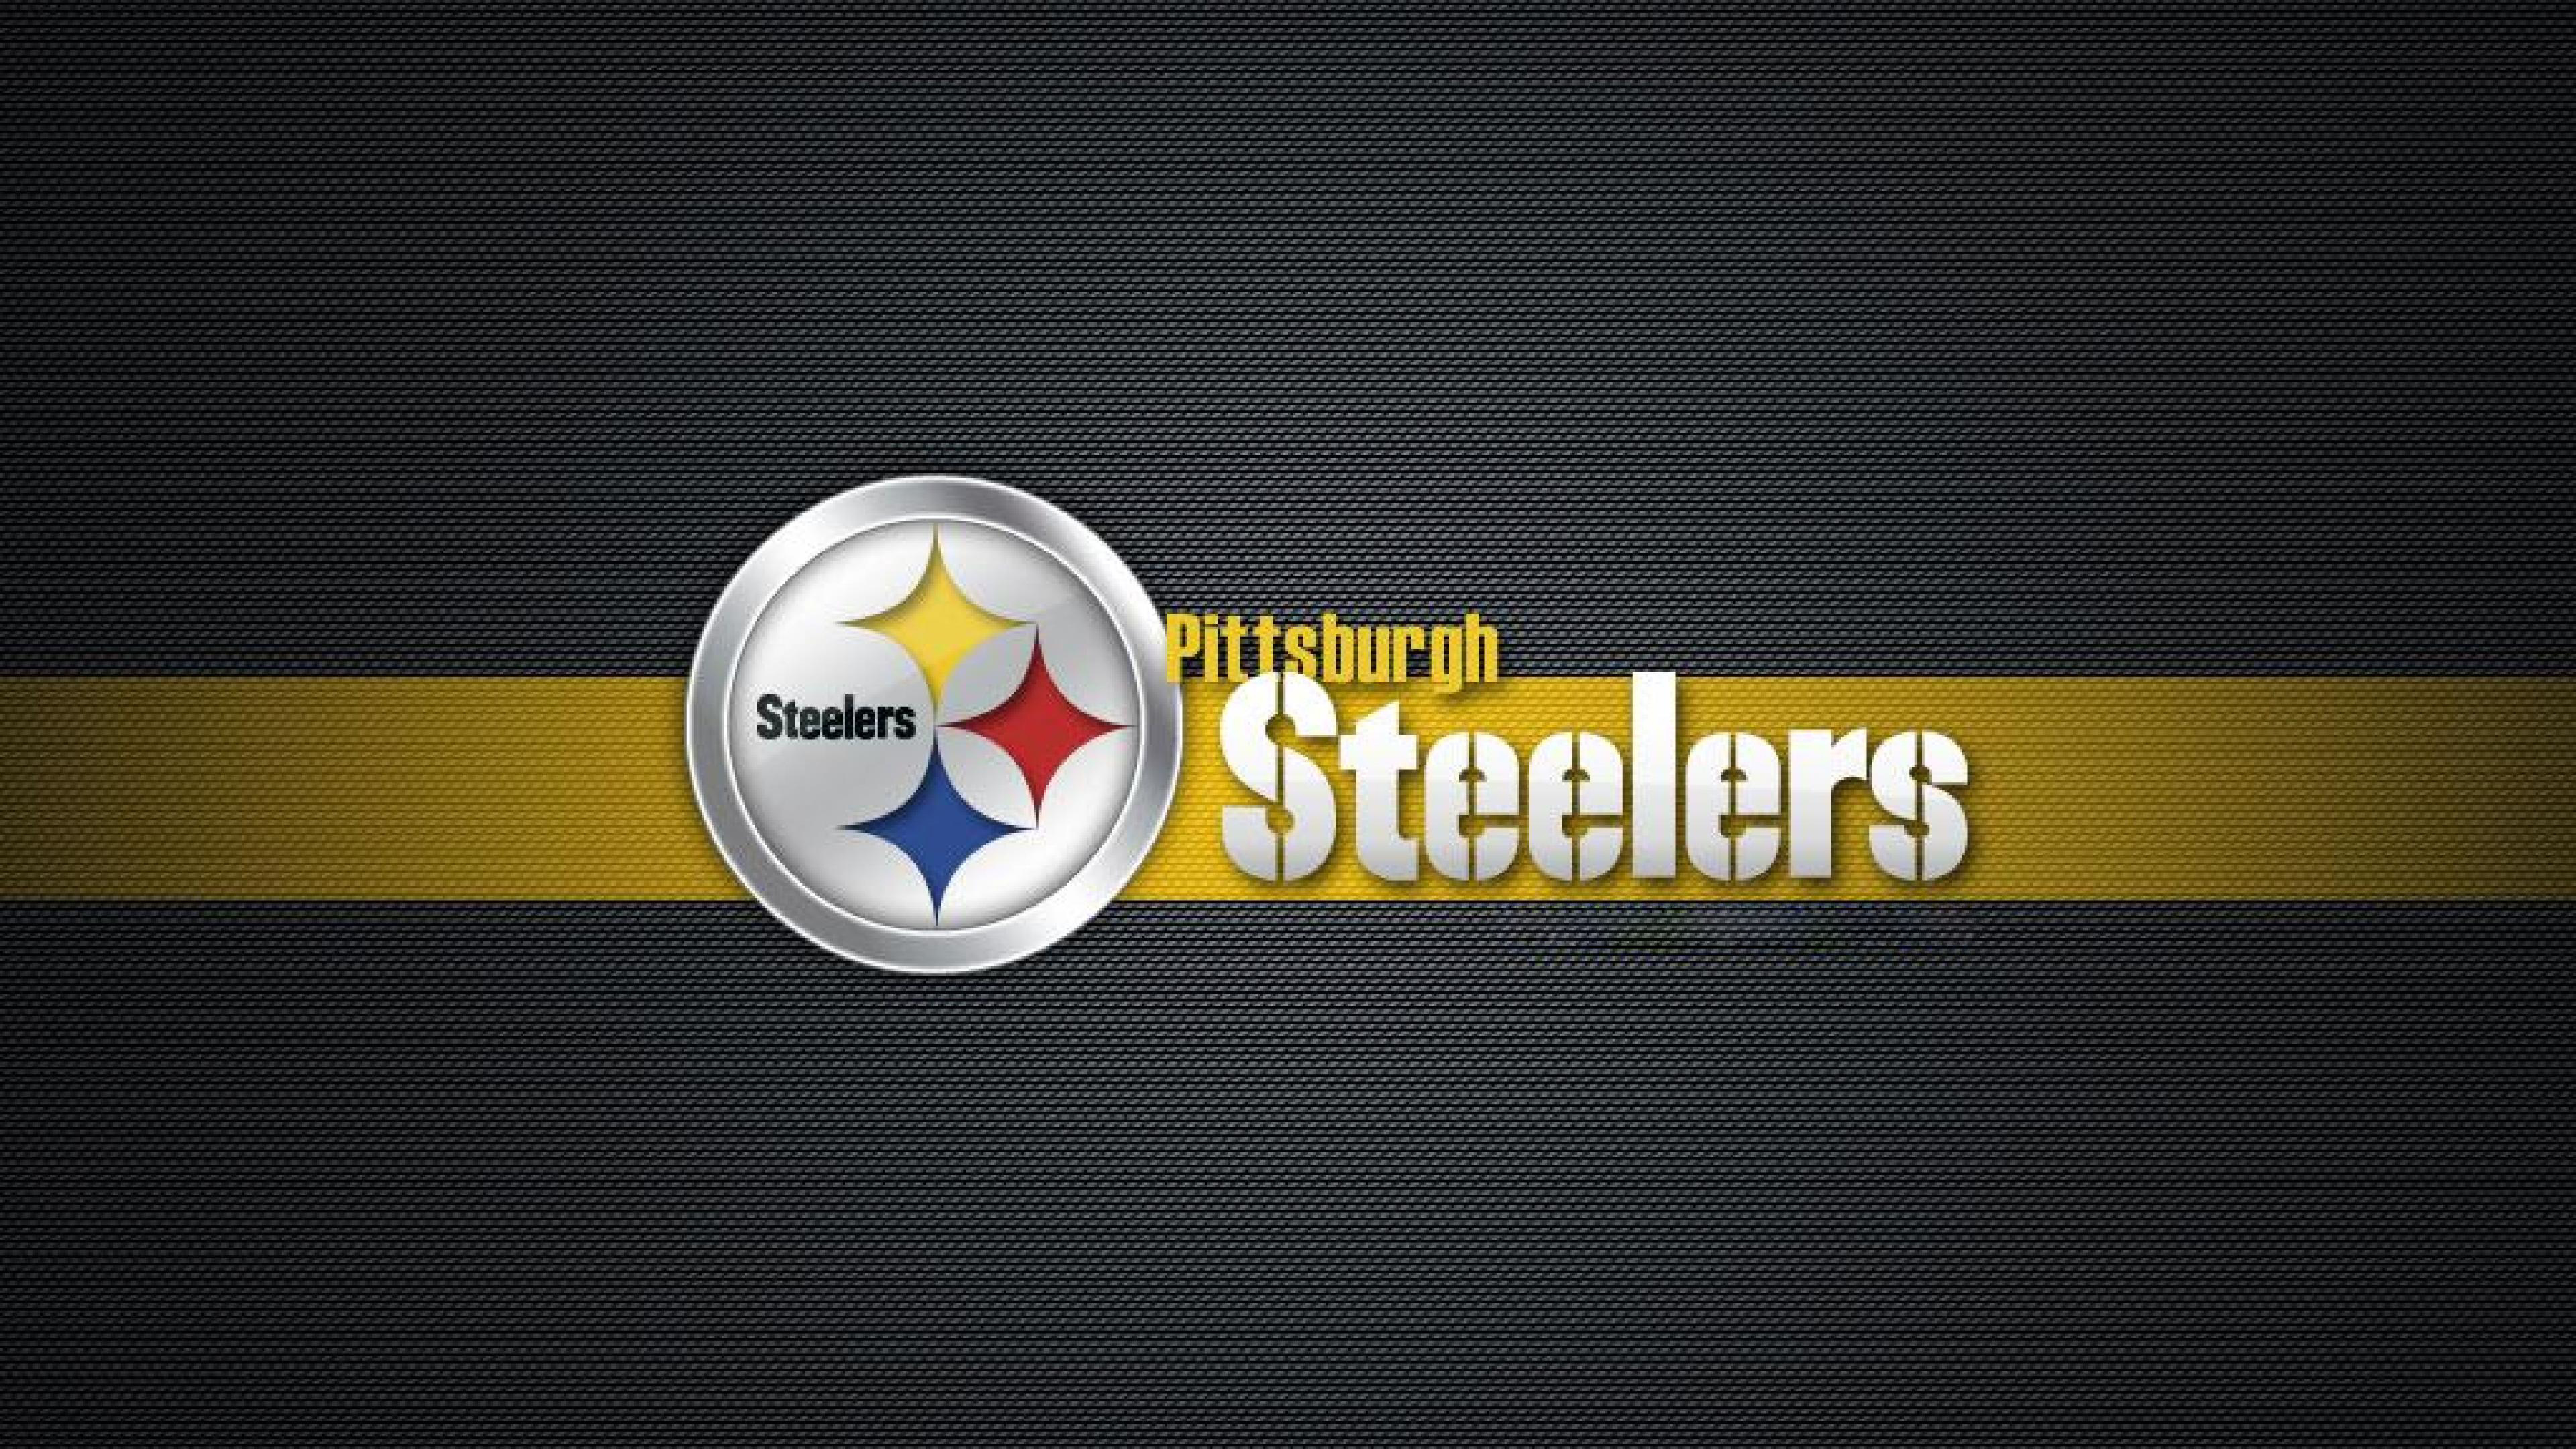 3840x2160 - Steelers Desktop 25